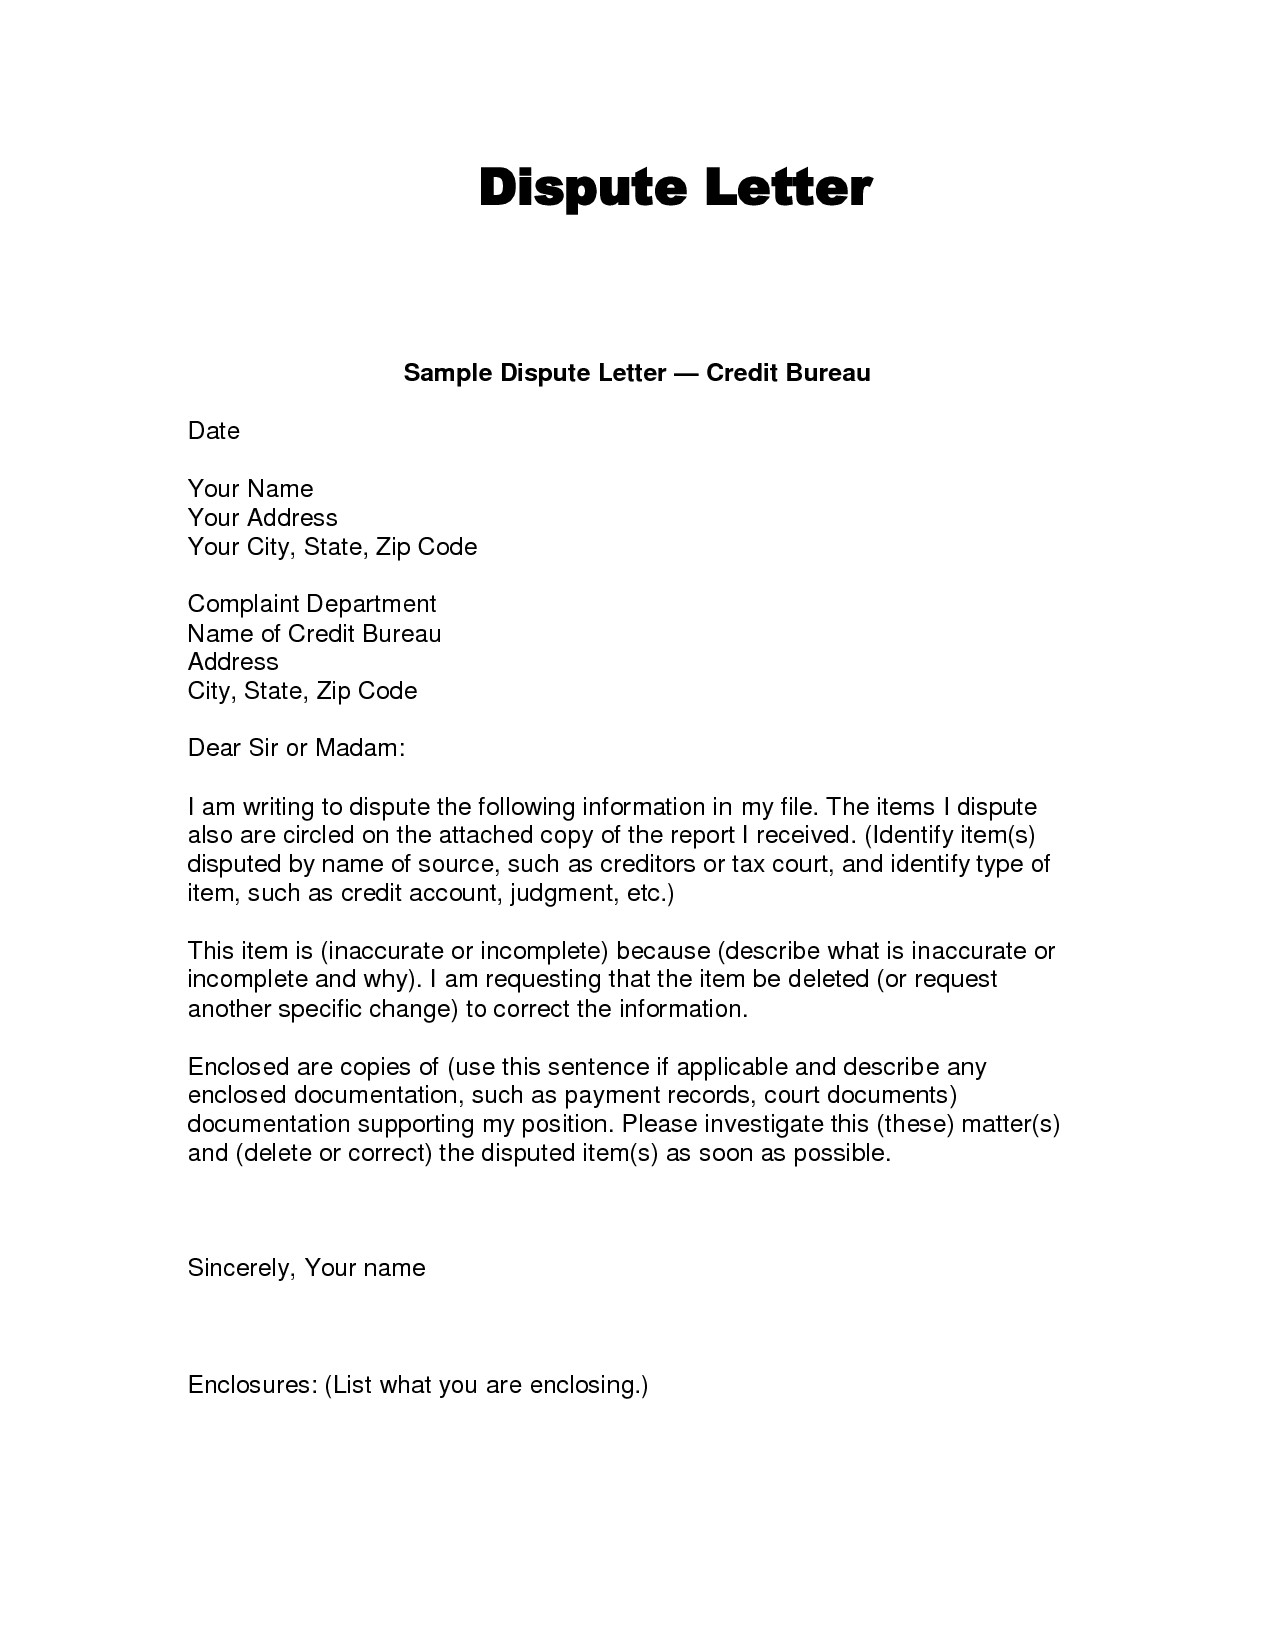 Dispute Letter to Credit Bureau Template - Letter format for Change Department Fresh Sample Credit Report